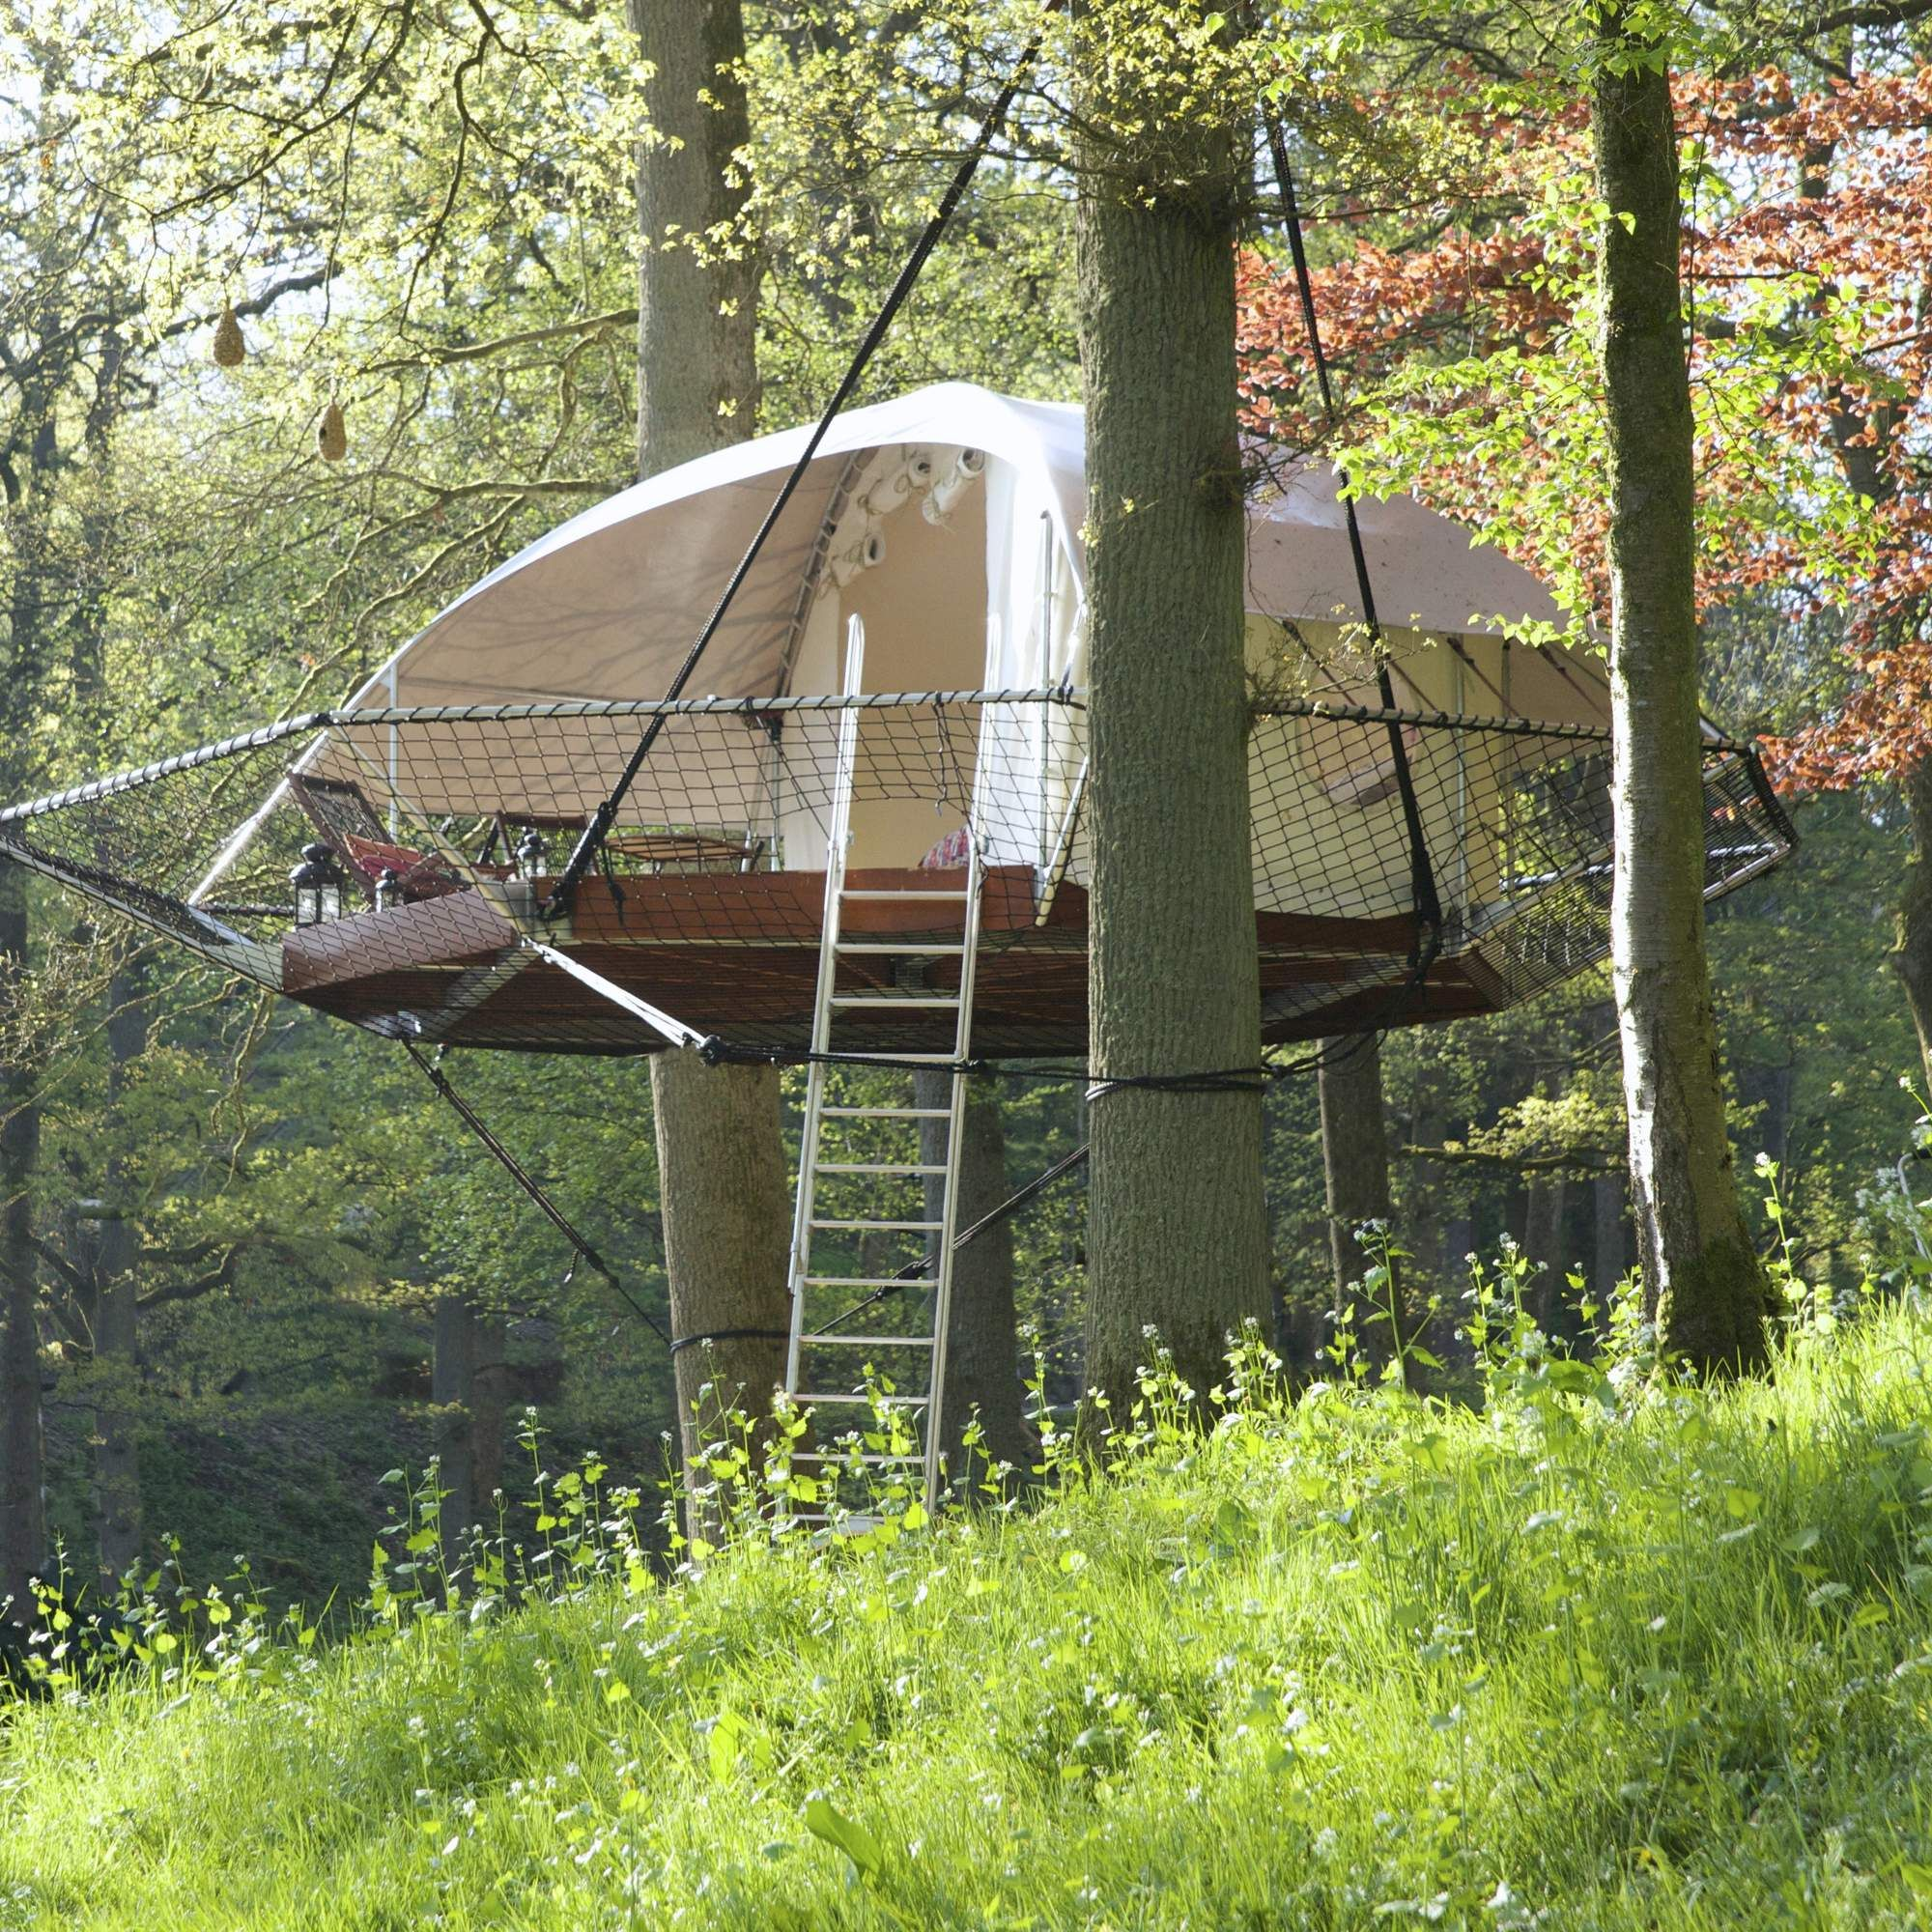 The Portable Treehouse Tent For Grown Ups  sc 1 st  Pinterest & The Portable Treehouse Tent For Grown Ups | Treehouse Tents and ...